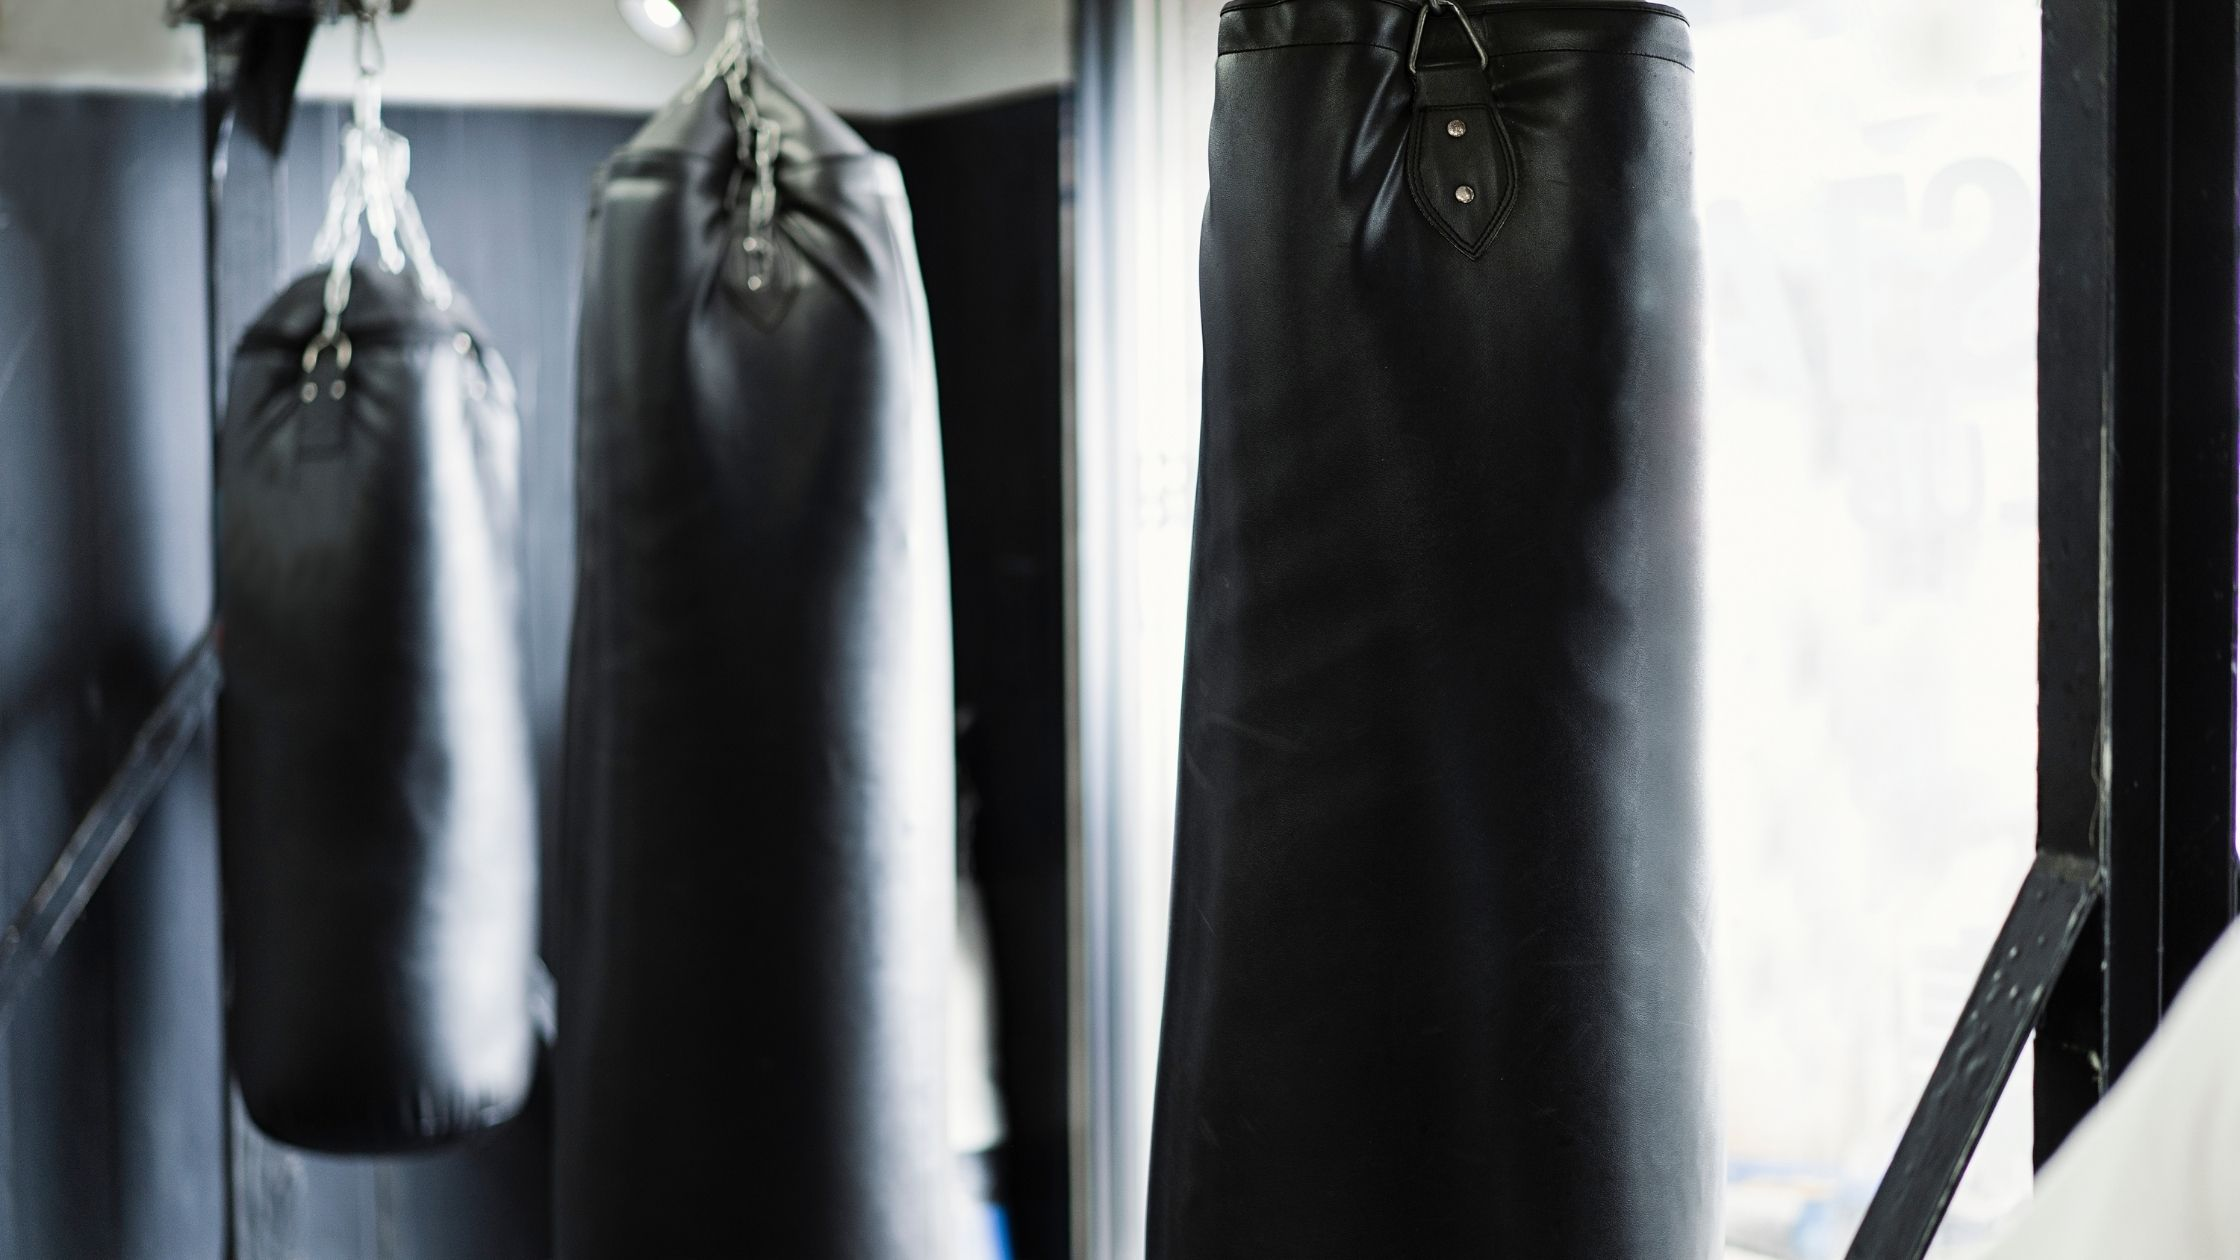 types of gyms: Boxing gym